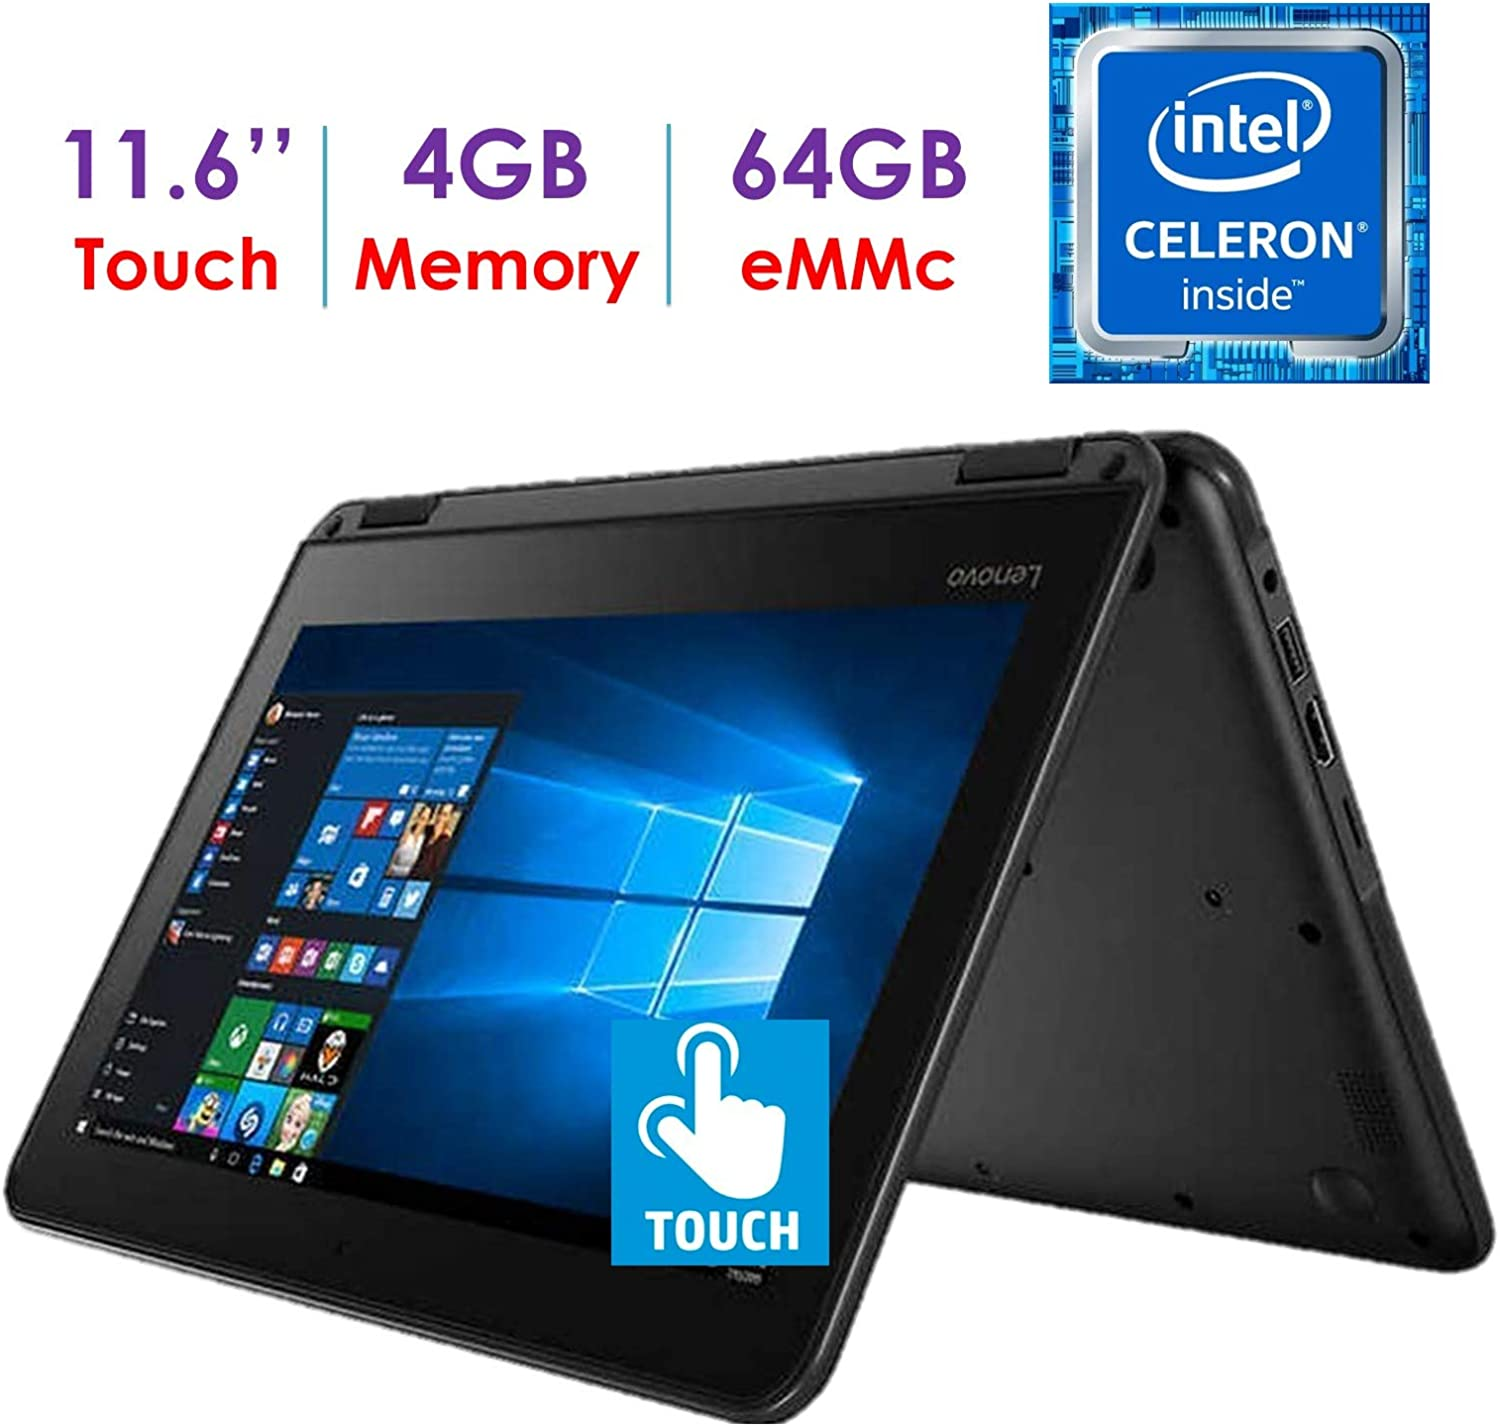 Newest Lenovo 300e Business 2-in-1 11.6'' HD IPS Touchscreen Laptop/Tablet, Intel Celeron Quad-Core N3450 up to 2.2GHz, 4GB DDR4 RAM, 64GB eMMC Drive, 802.11ac WiFi, Bluetooth 4.1, Windows 10 S/Pro